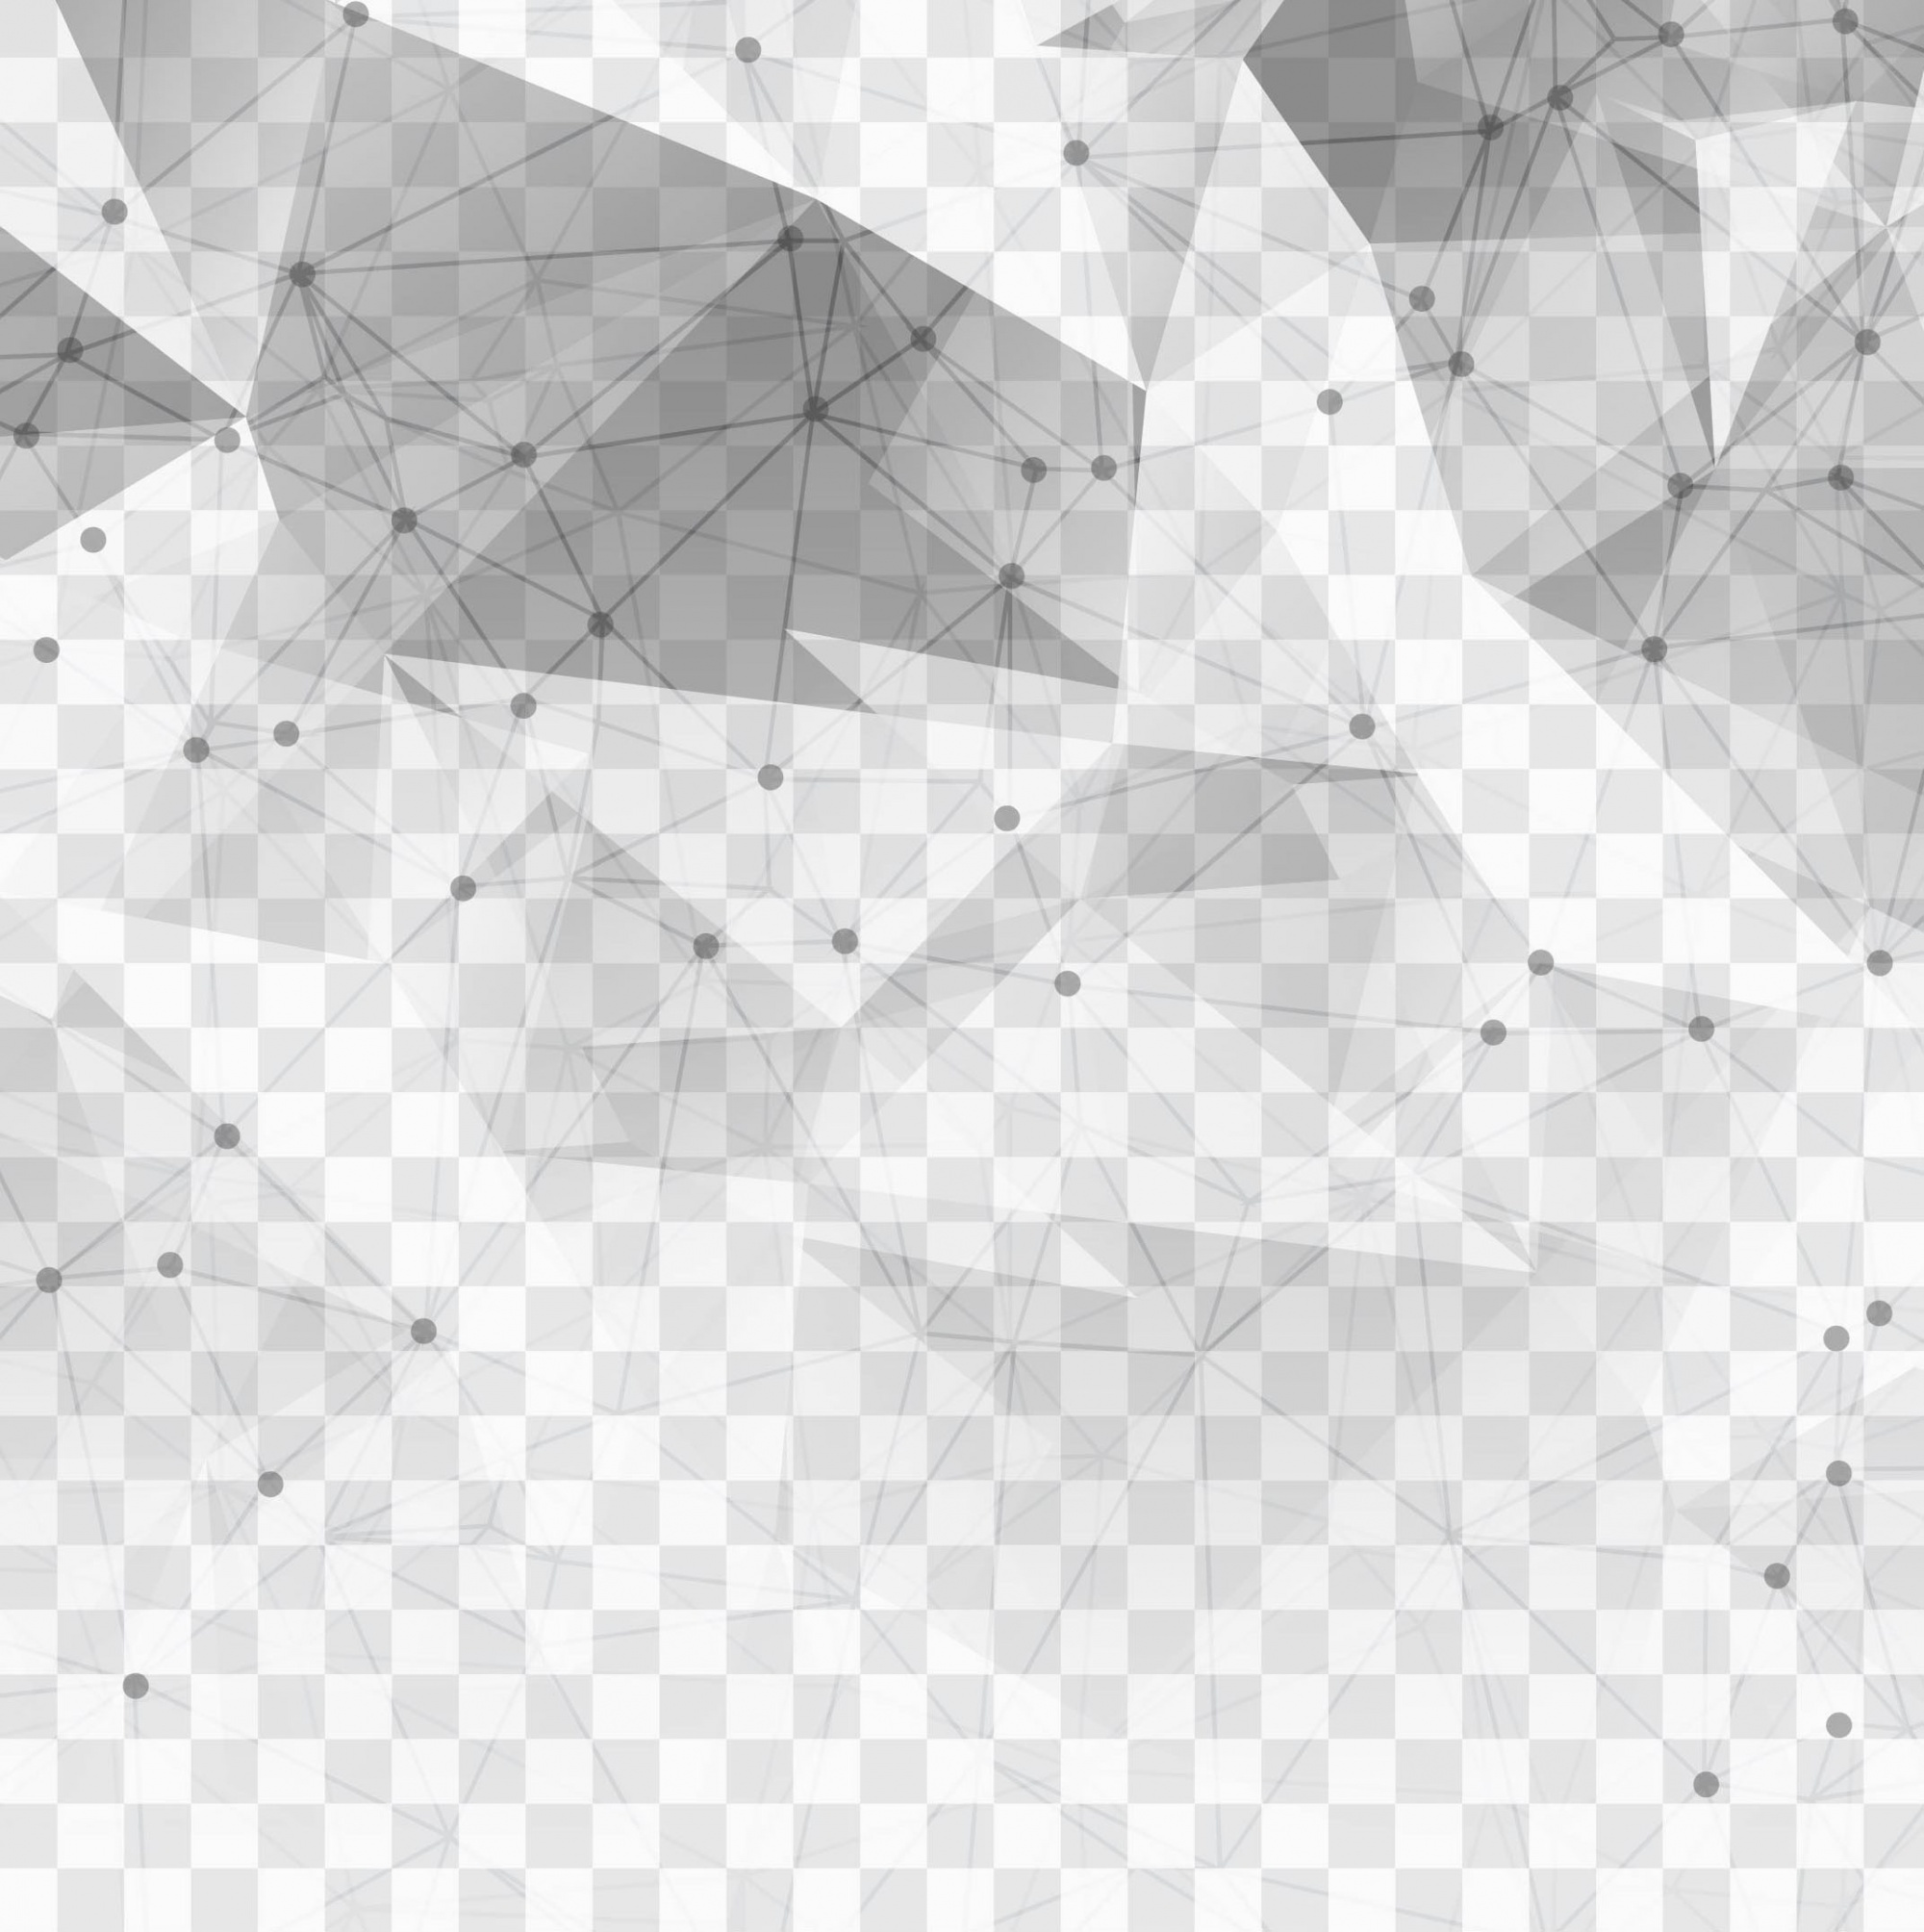 Polygonal technological elements on a transparent background